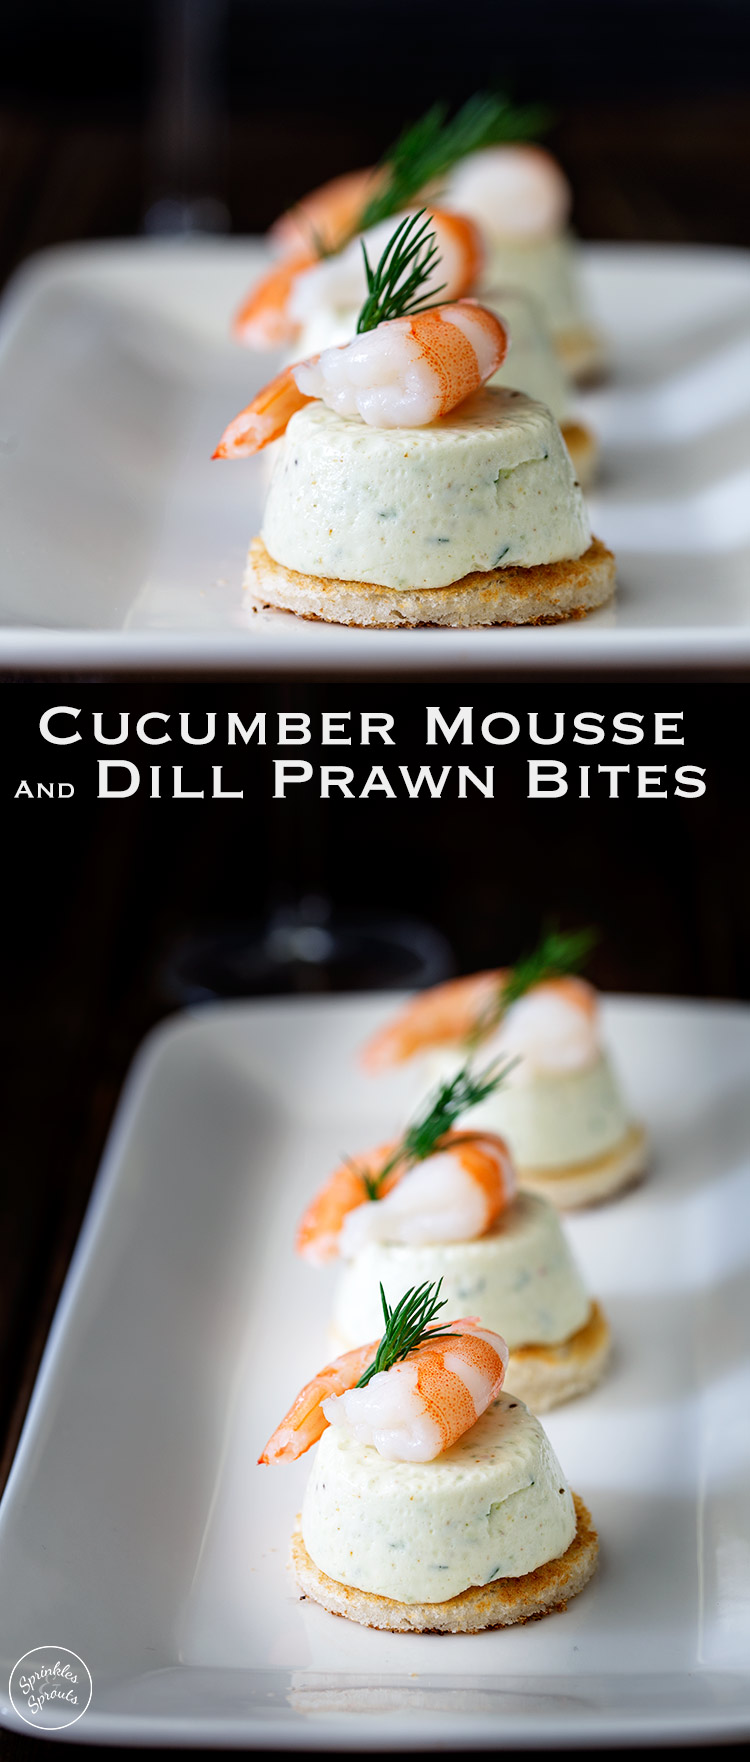 These Cucumber Mousse And Dill Shrimp Bites are sublime. The subtle and refreshing taste of cucumber combined in a soft heavenly mousse, sat on top of a crispy toast circle and topped with a succulent shrimp and the freshness of dill. From https://www.sprinklesandsprouts.com.au